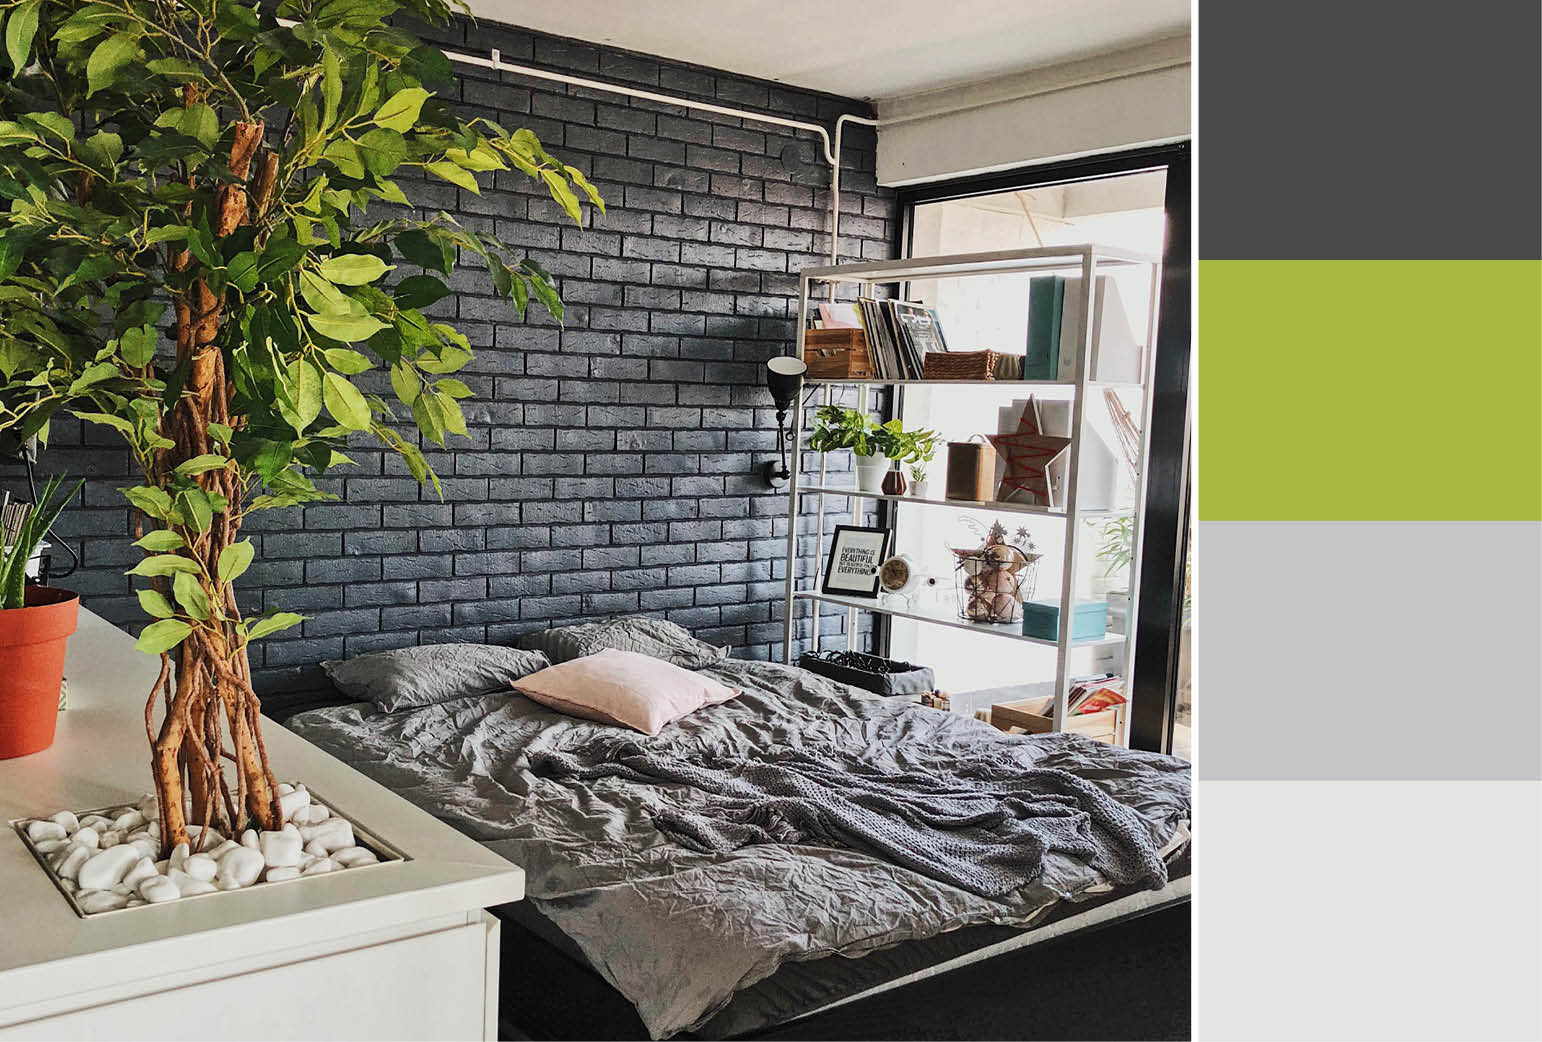 Black Accent Walls 30 Accent Wall Color Combinations To Match Any Style Shutterfly